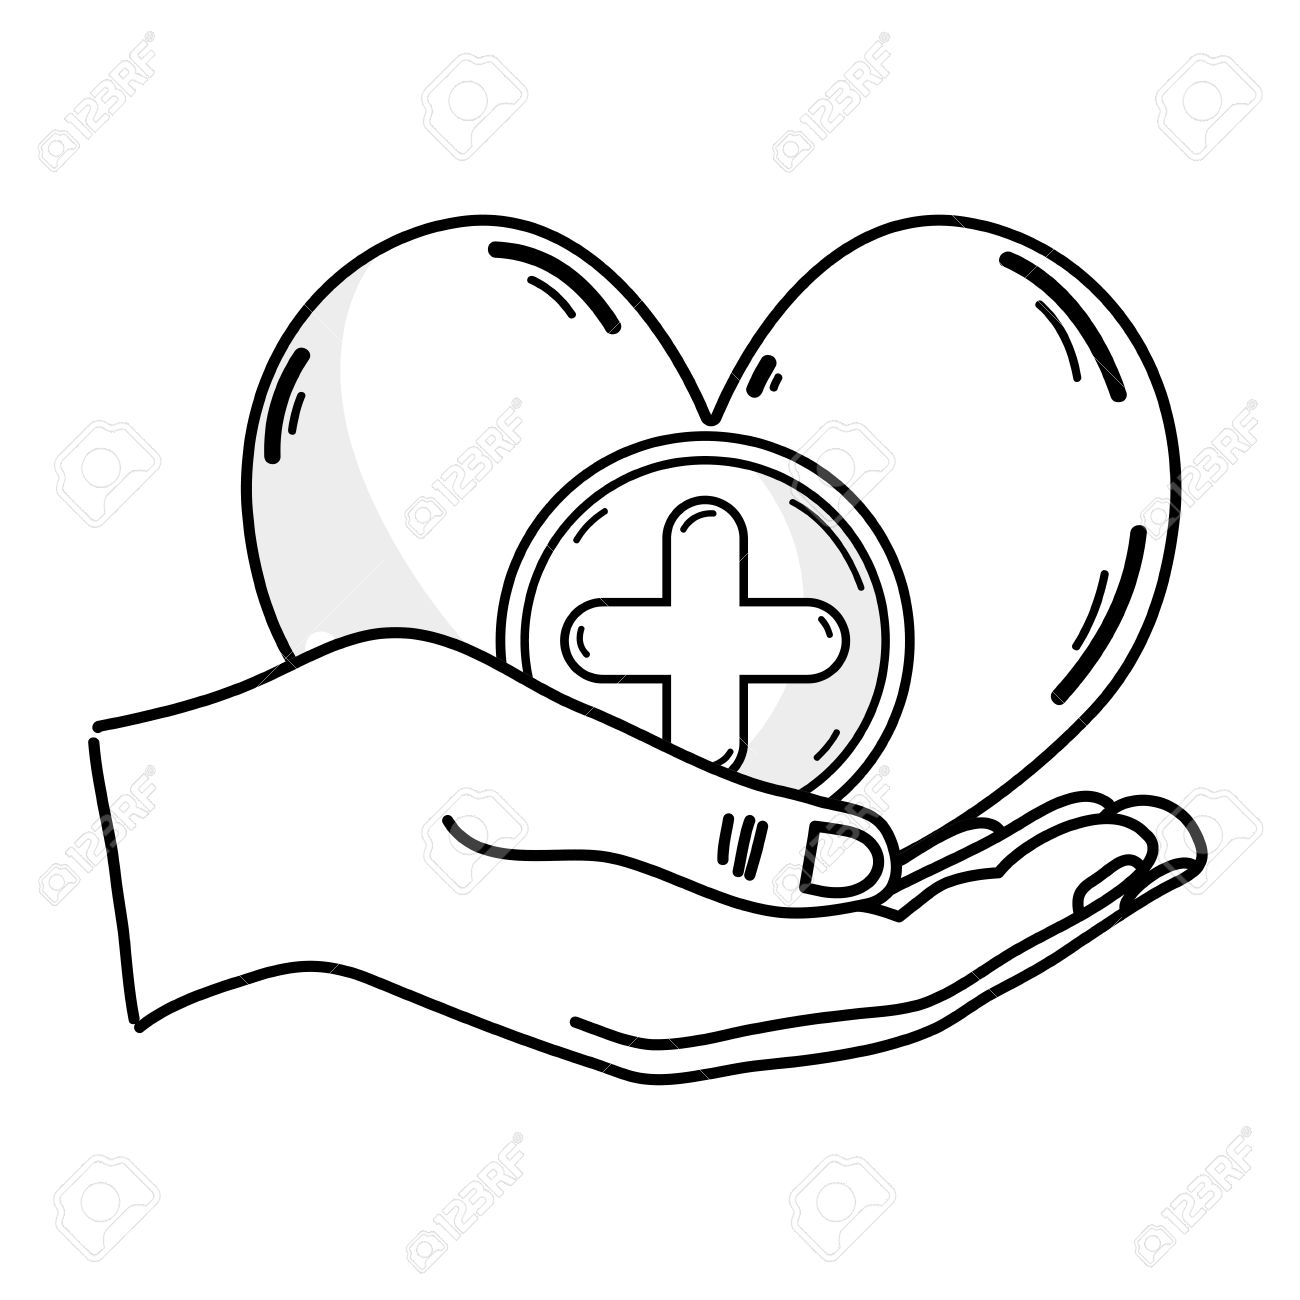 1300x1300 Outline Drawing Of Hands Holding A Heart Shape Medicine